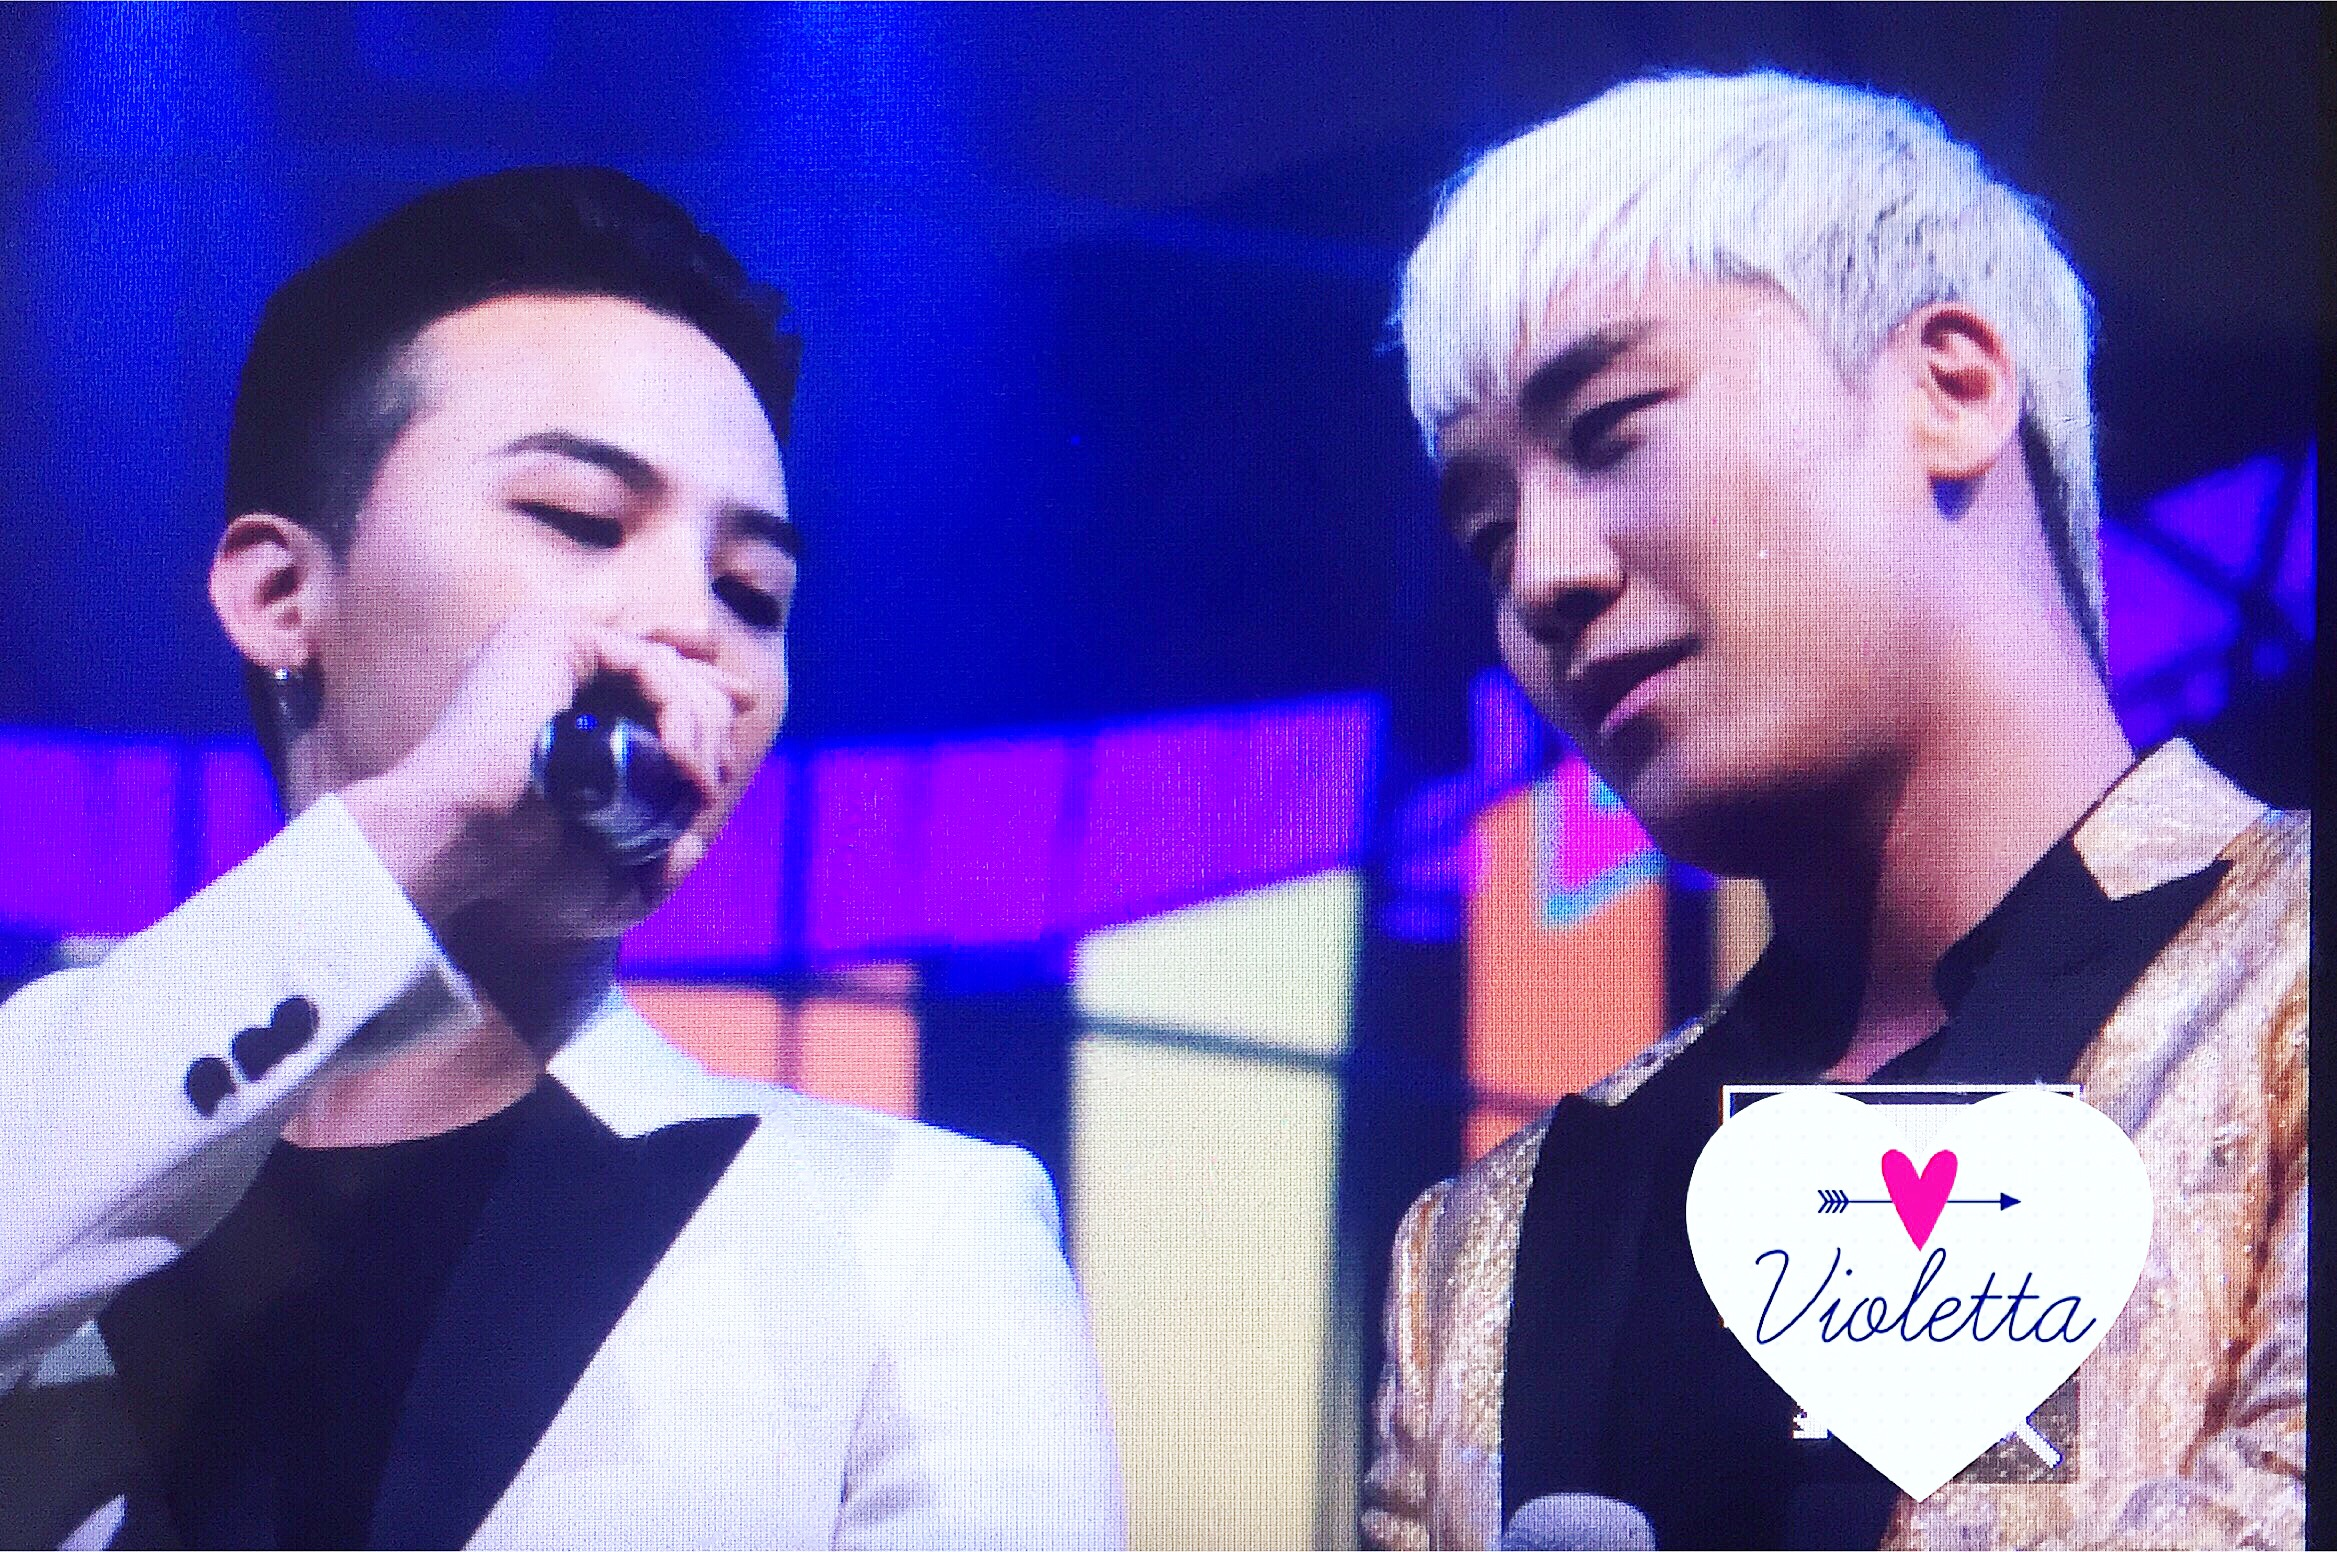 BIGBANG Hunan TV 2015-12-31 By Violetta_1212 (8)